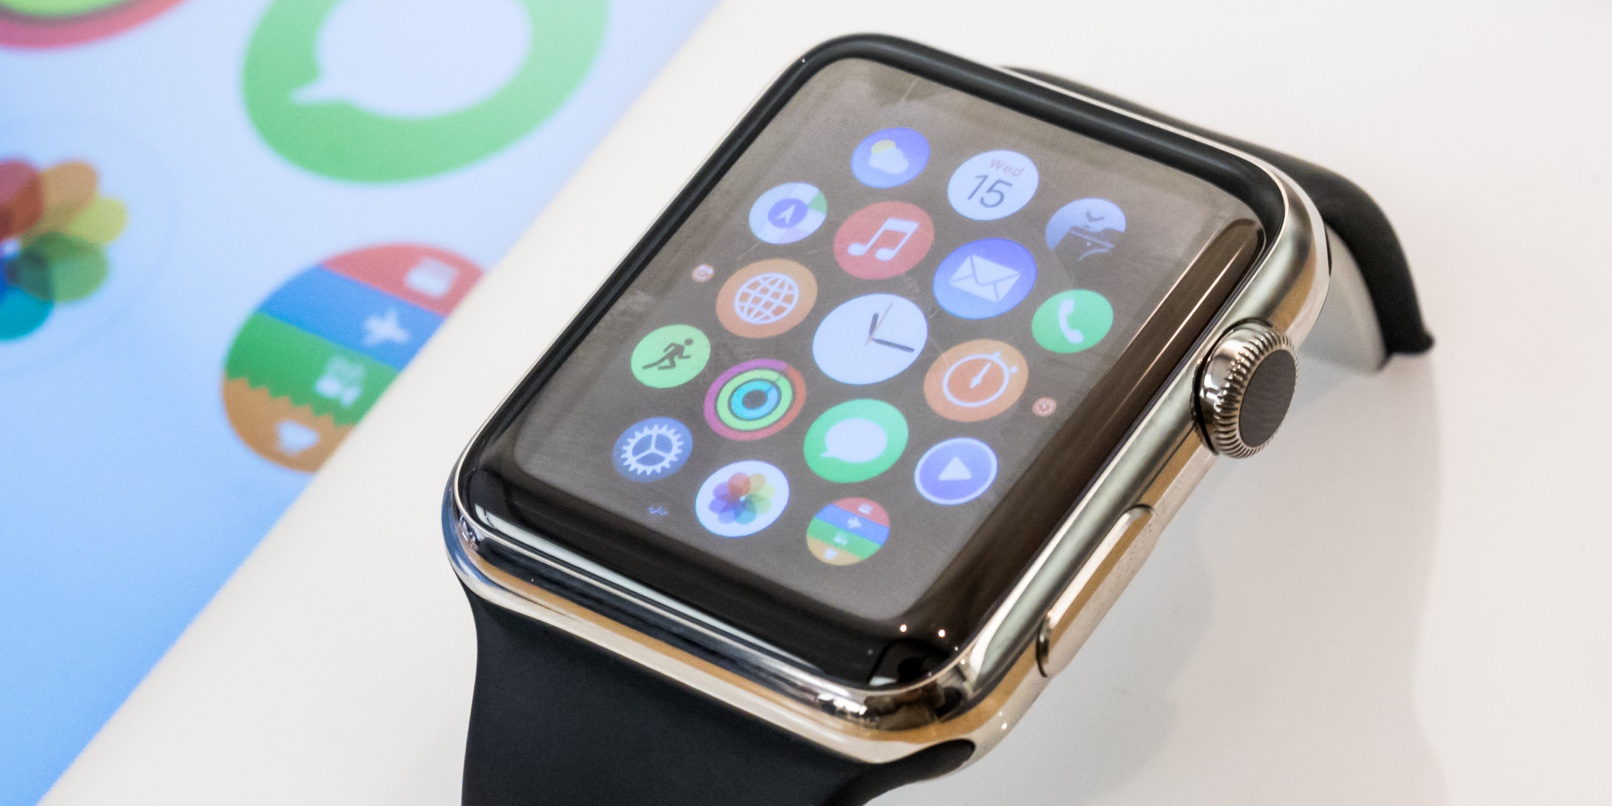 New, slimmer Apple Watch may arrive at WWDC 2016